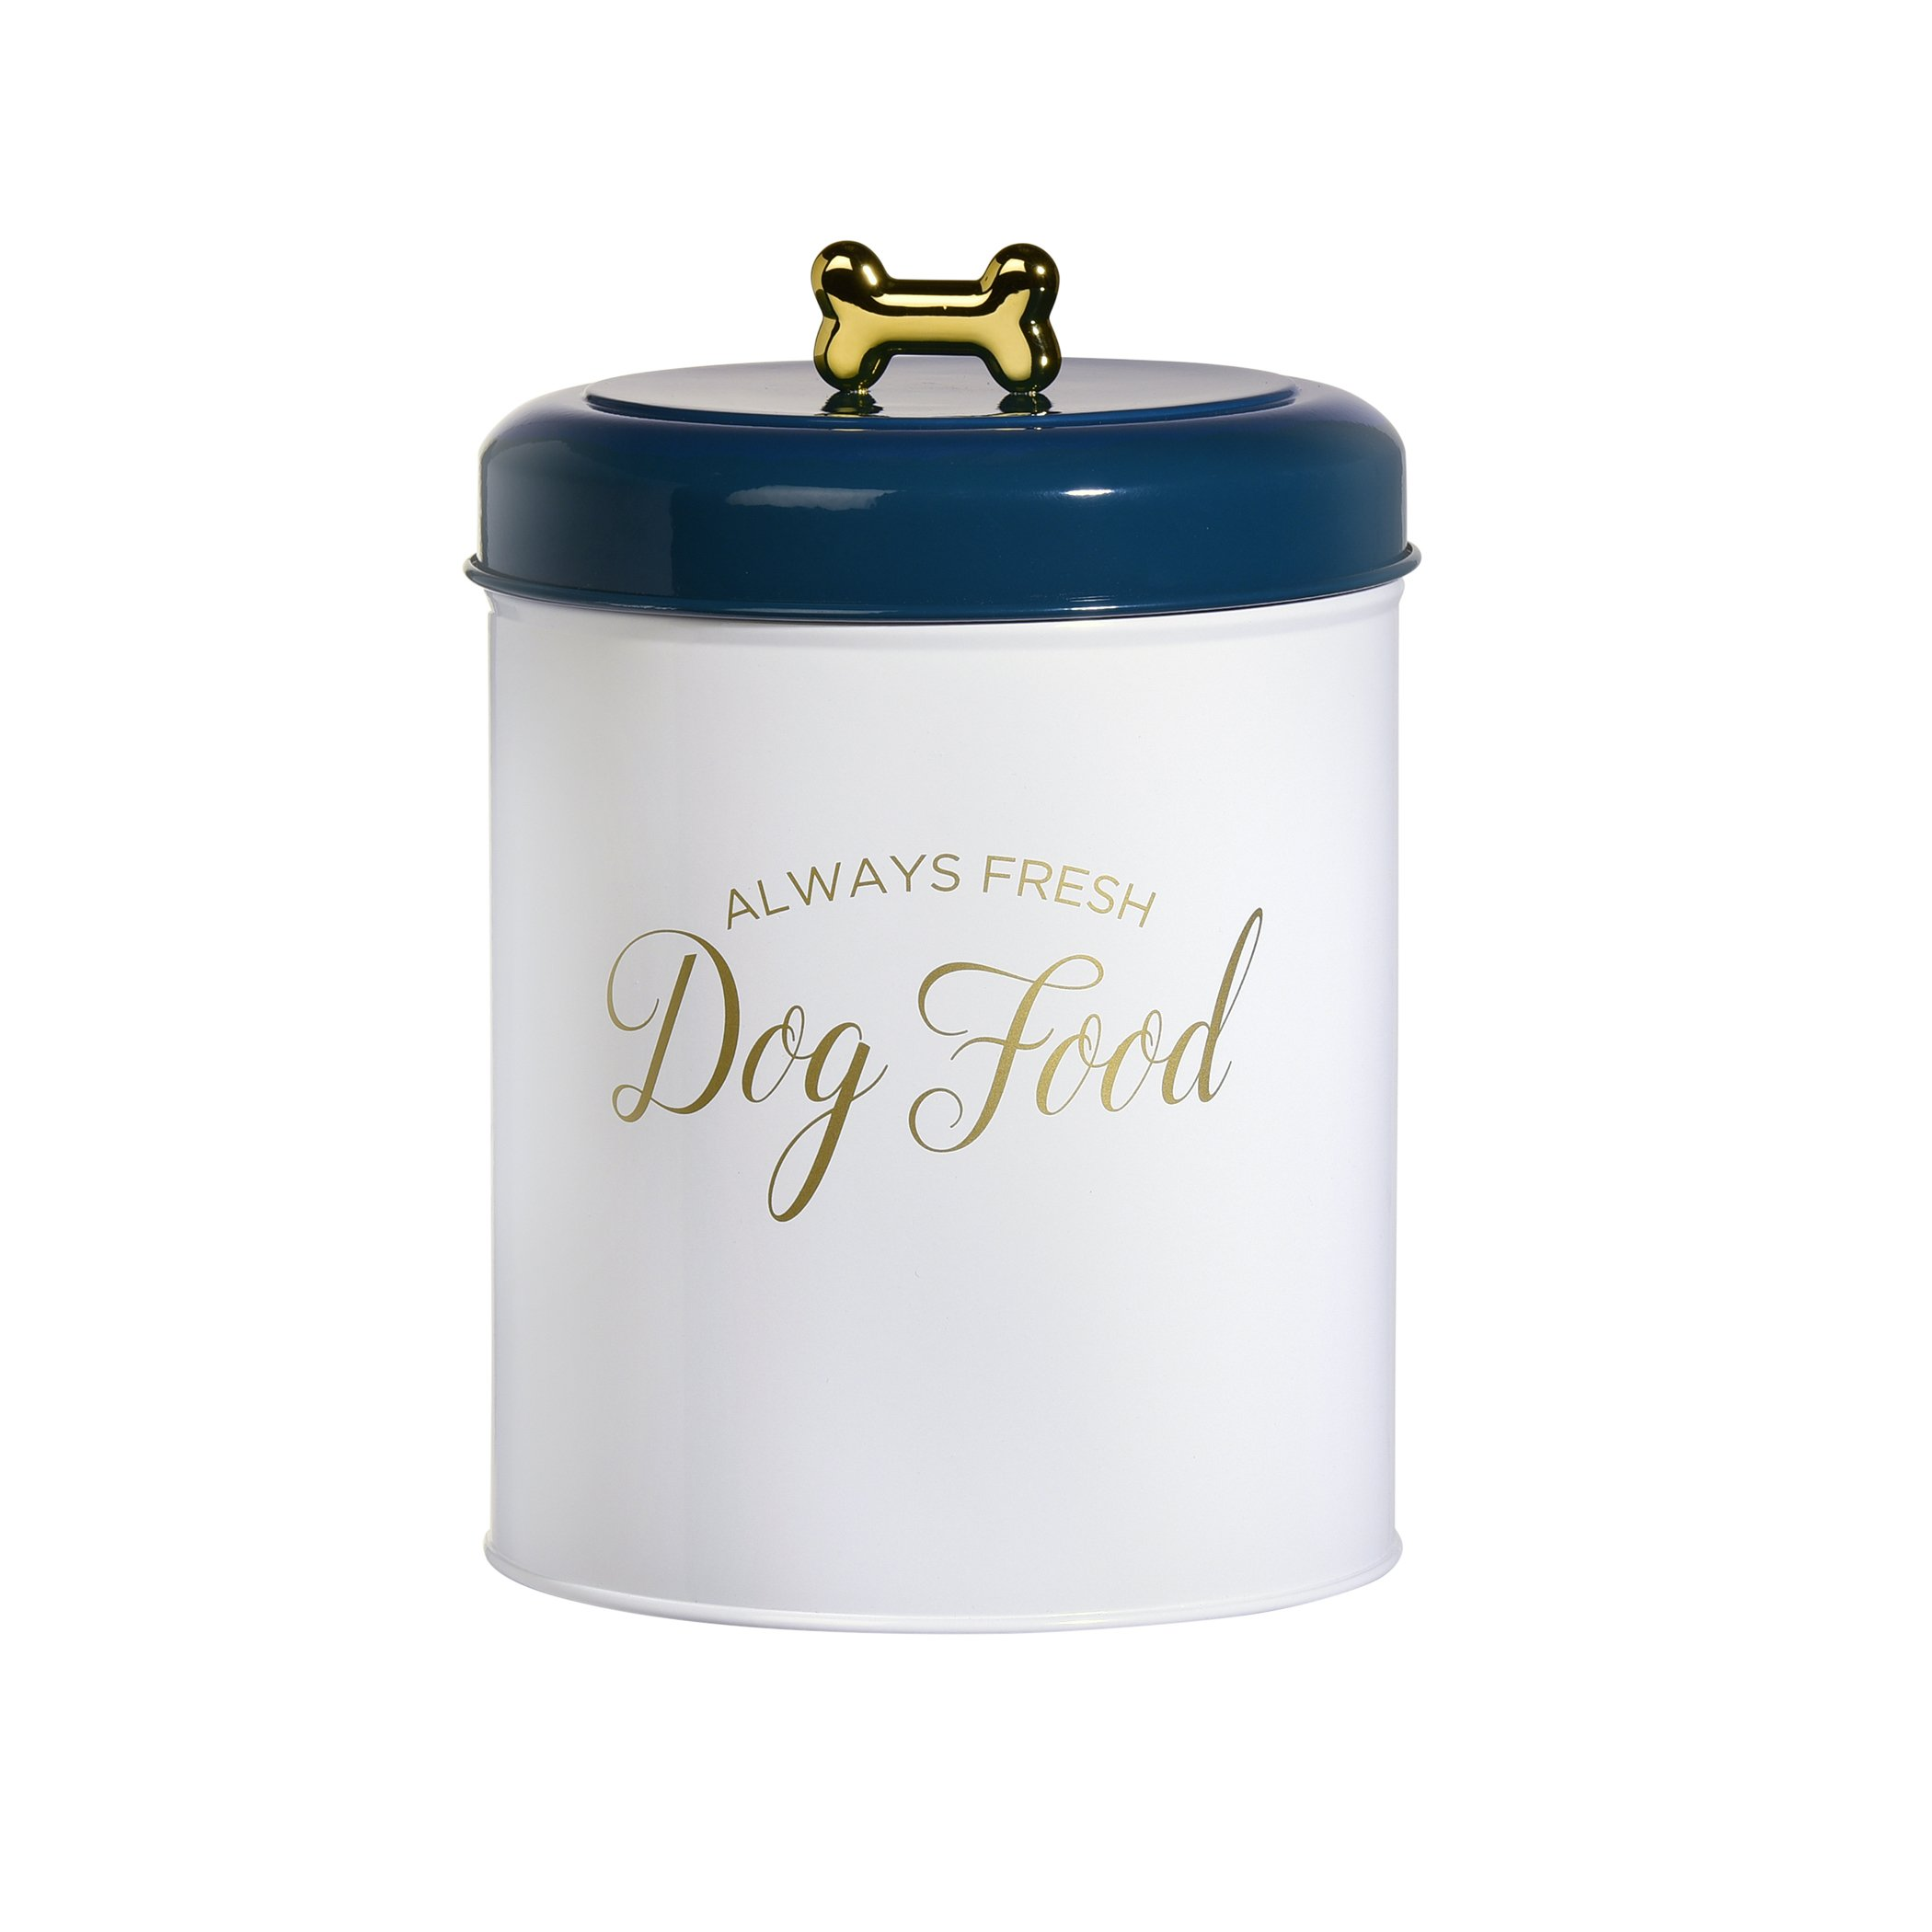 Amici Pet, 7CDI036R, Maltese Round Metal Dog Food Storage Canister, Always Fresh Dog Food Decal, Gold Tone Lettering and Bone Shaped Knob, Food Safe, 140 Ounces